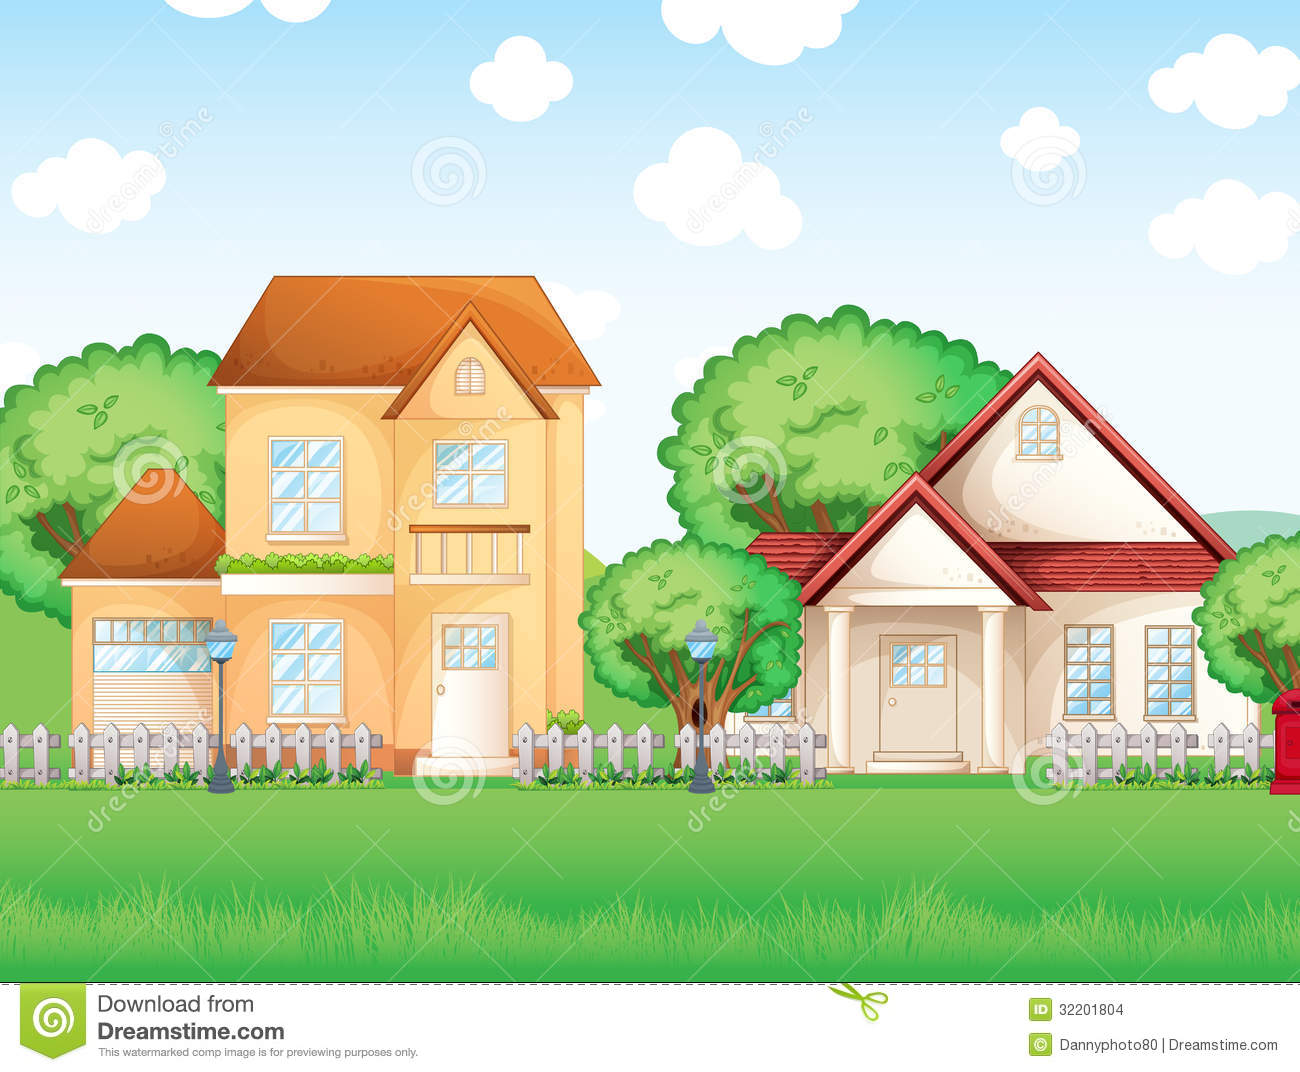 Big and small house clipart image library library Two Big Houses Stock Images - Image: 32201804 image library library